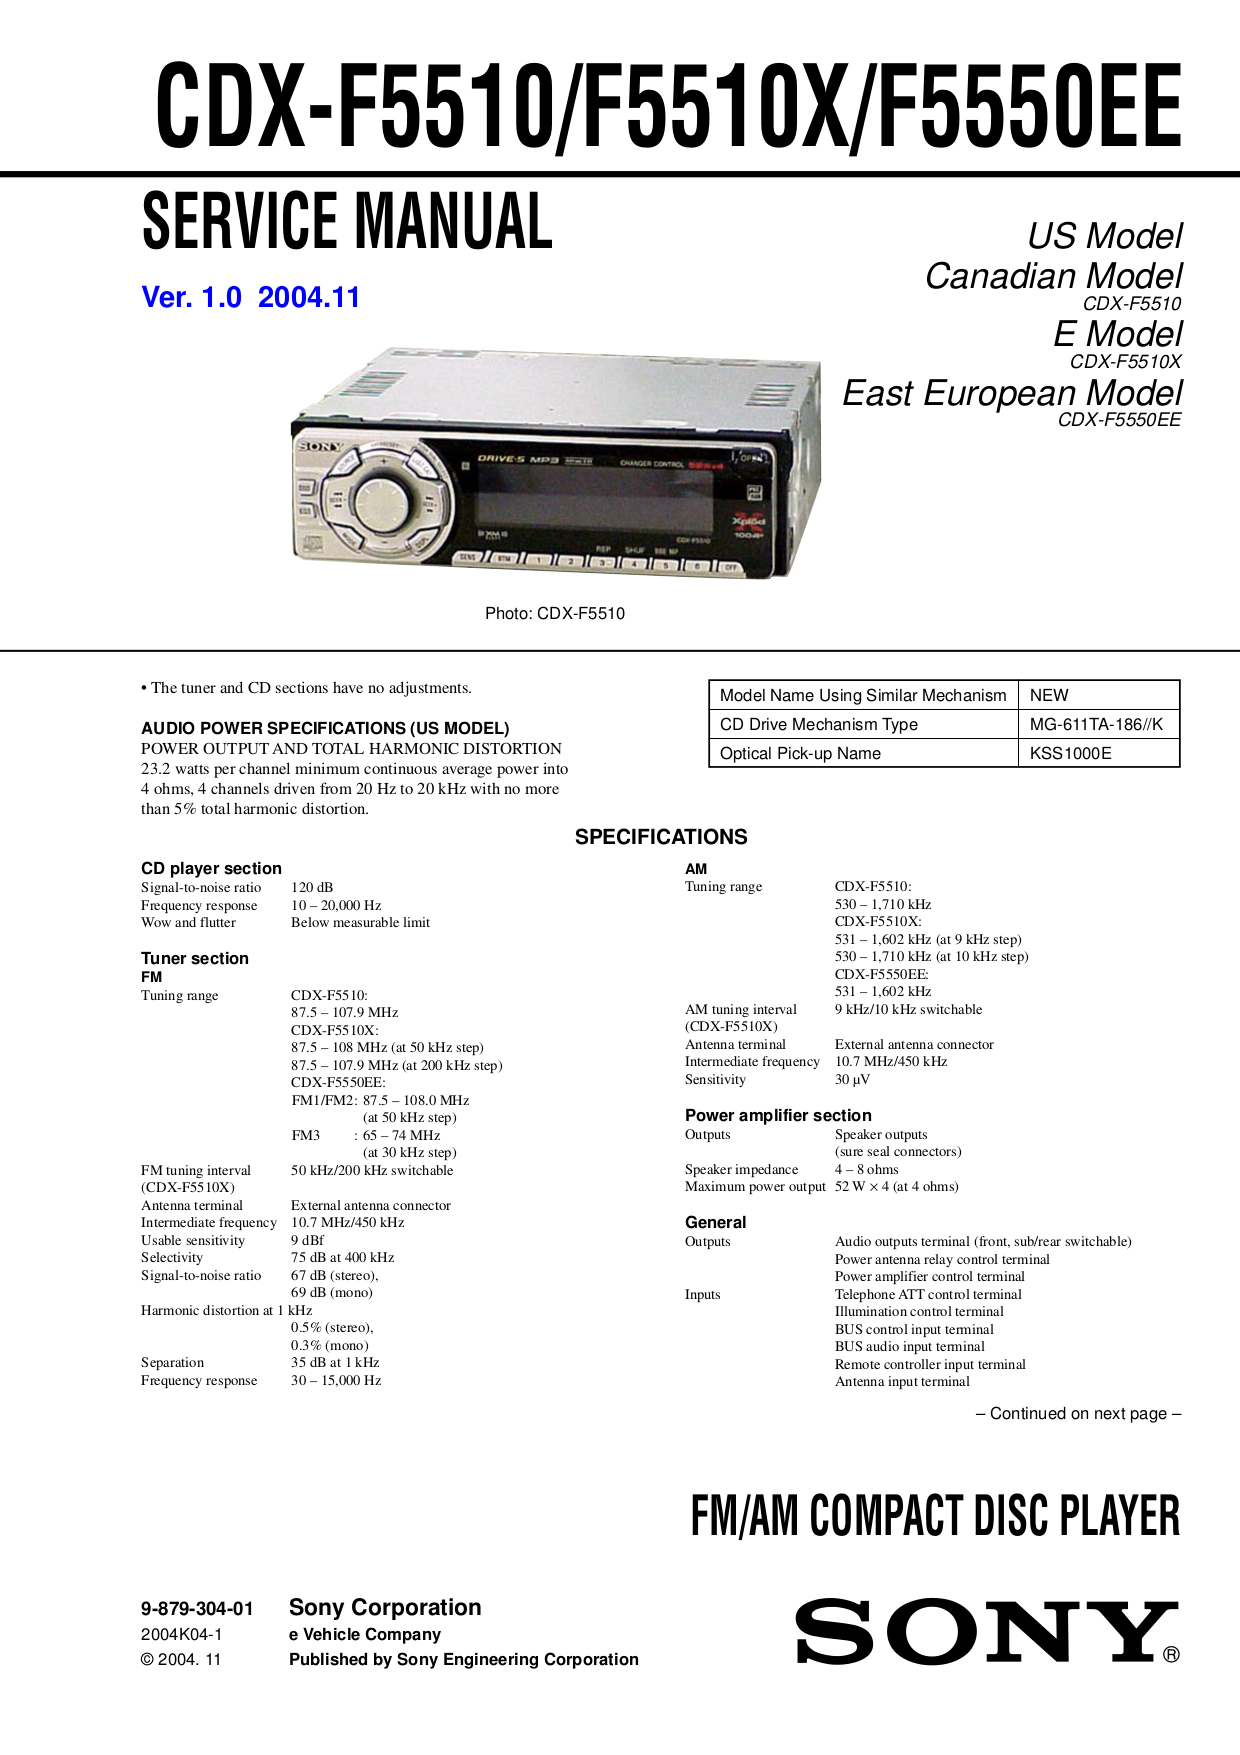 sony_cdx f5510_f5510x_f5550ee_ver 1.0_sm.pdf 0 pdf manual for sony car receiver cdx f5510 sony cdx f5710 wiring diagram at creativeand.co